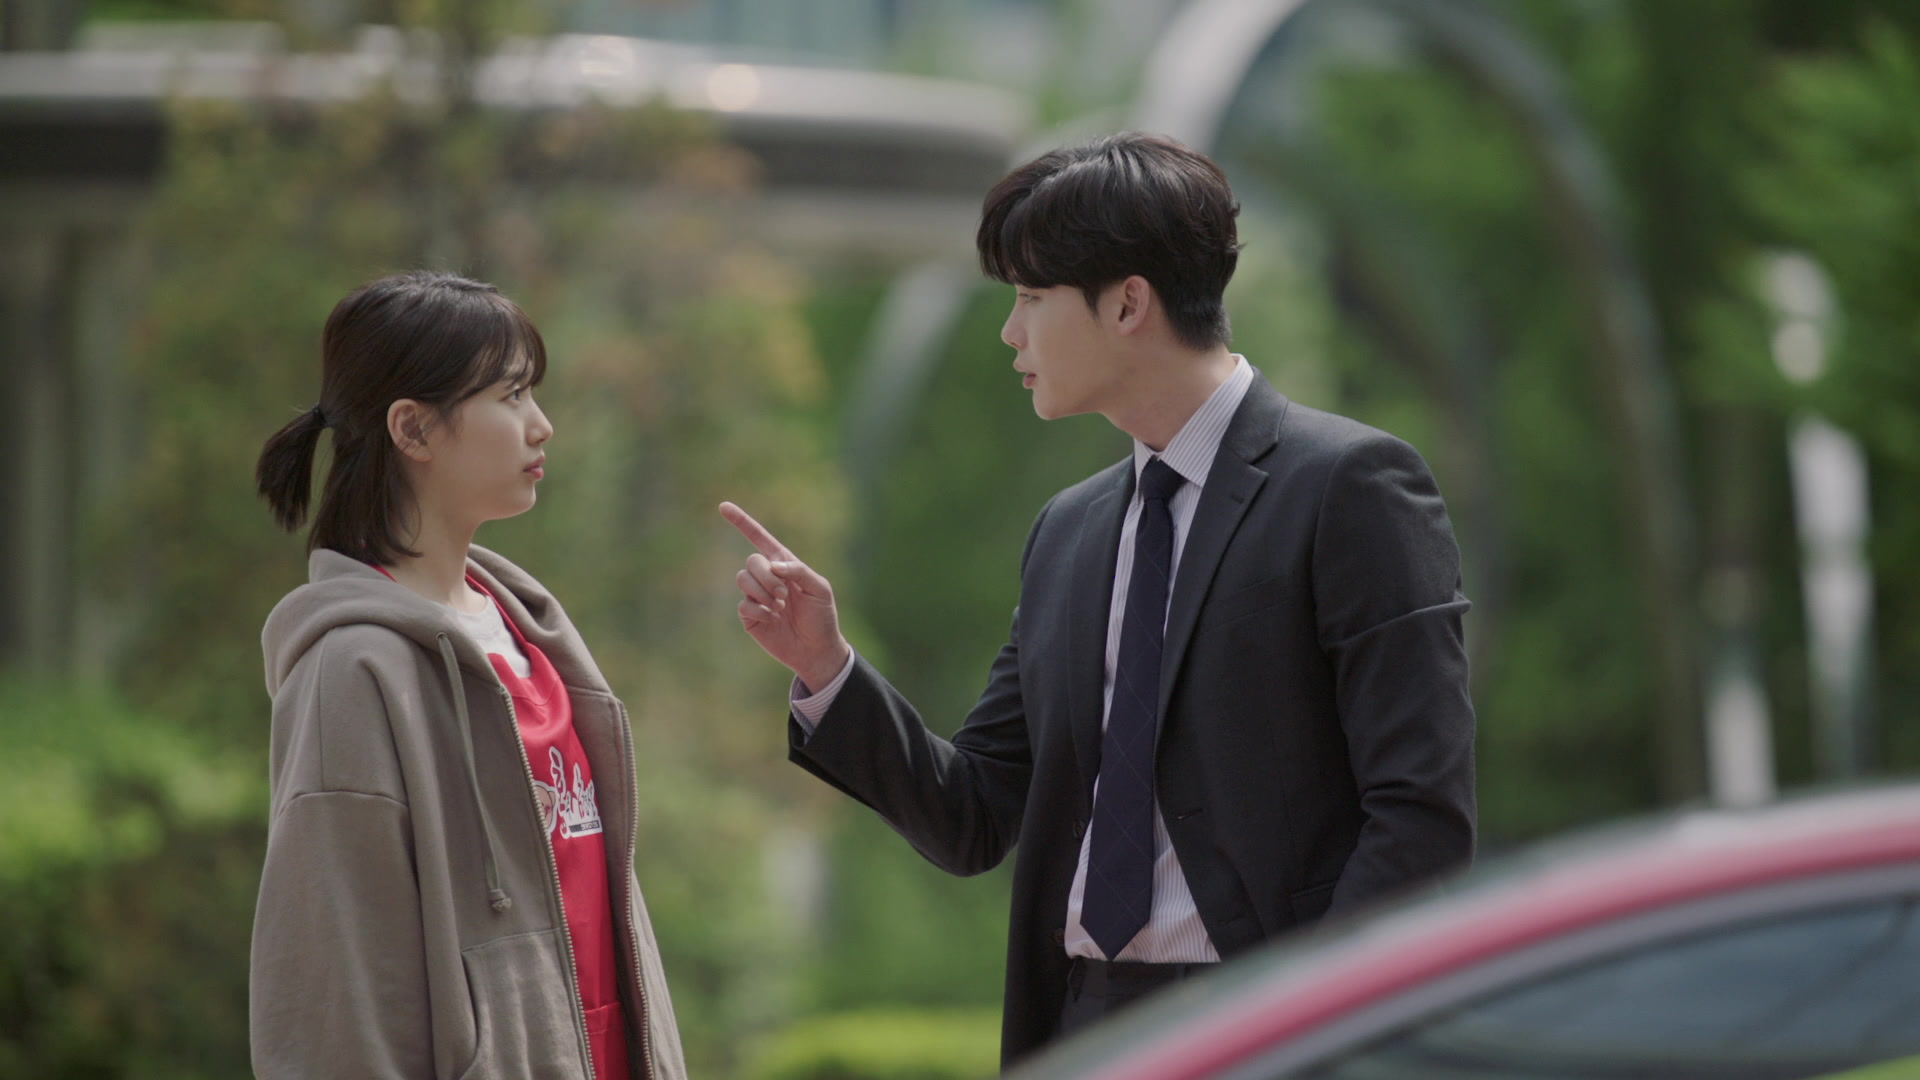 While You Were Sleeping - 당신이 잠든 사이에 - Watch Full